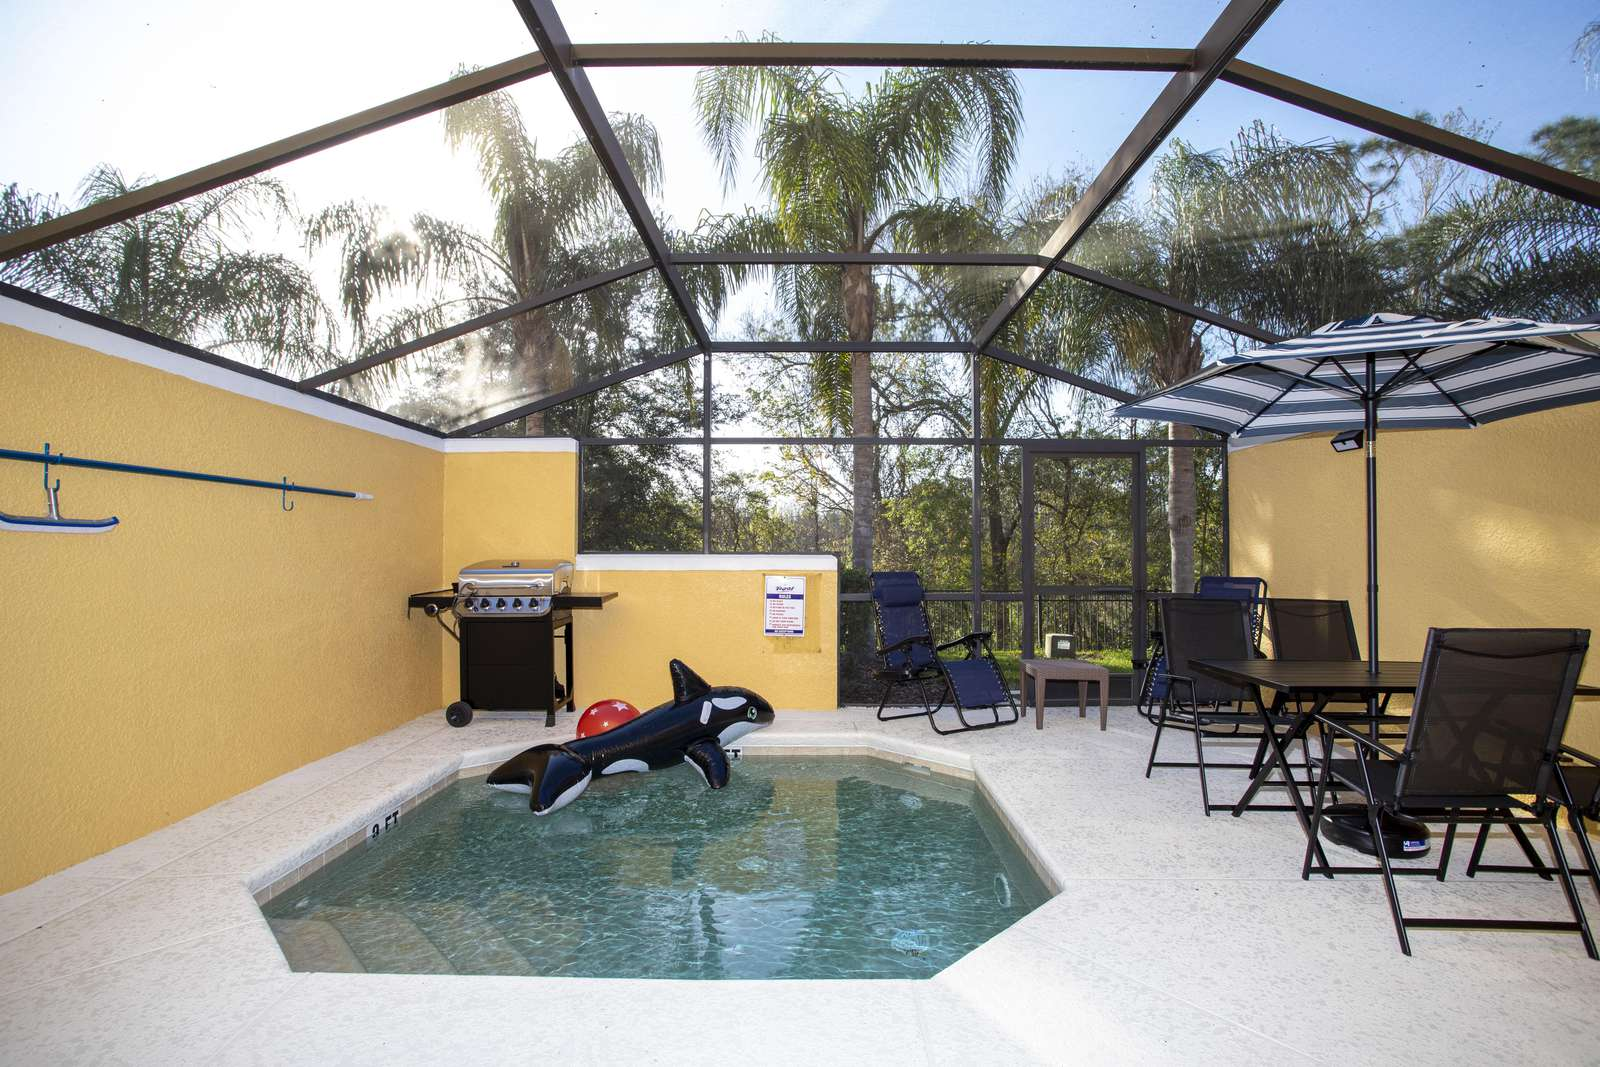 Private Pool /BBQ GRILL rental - property